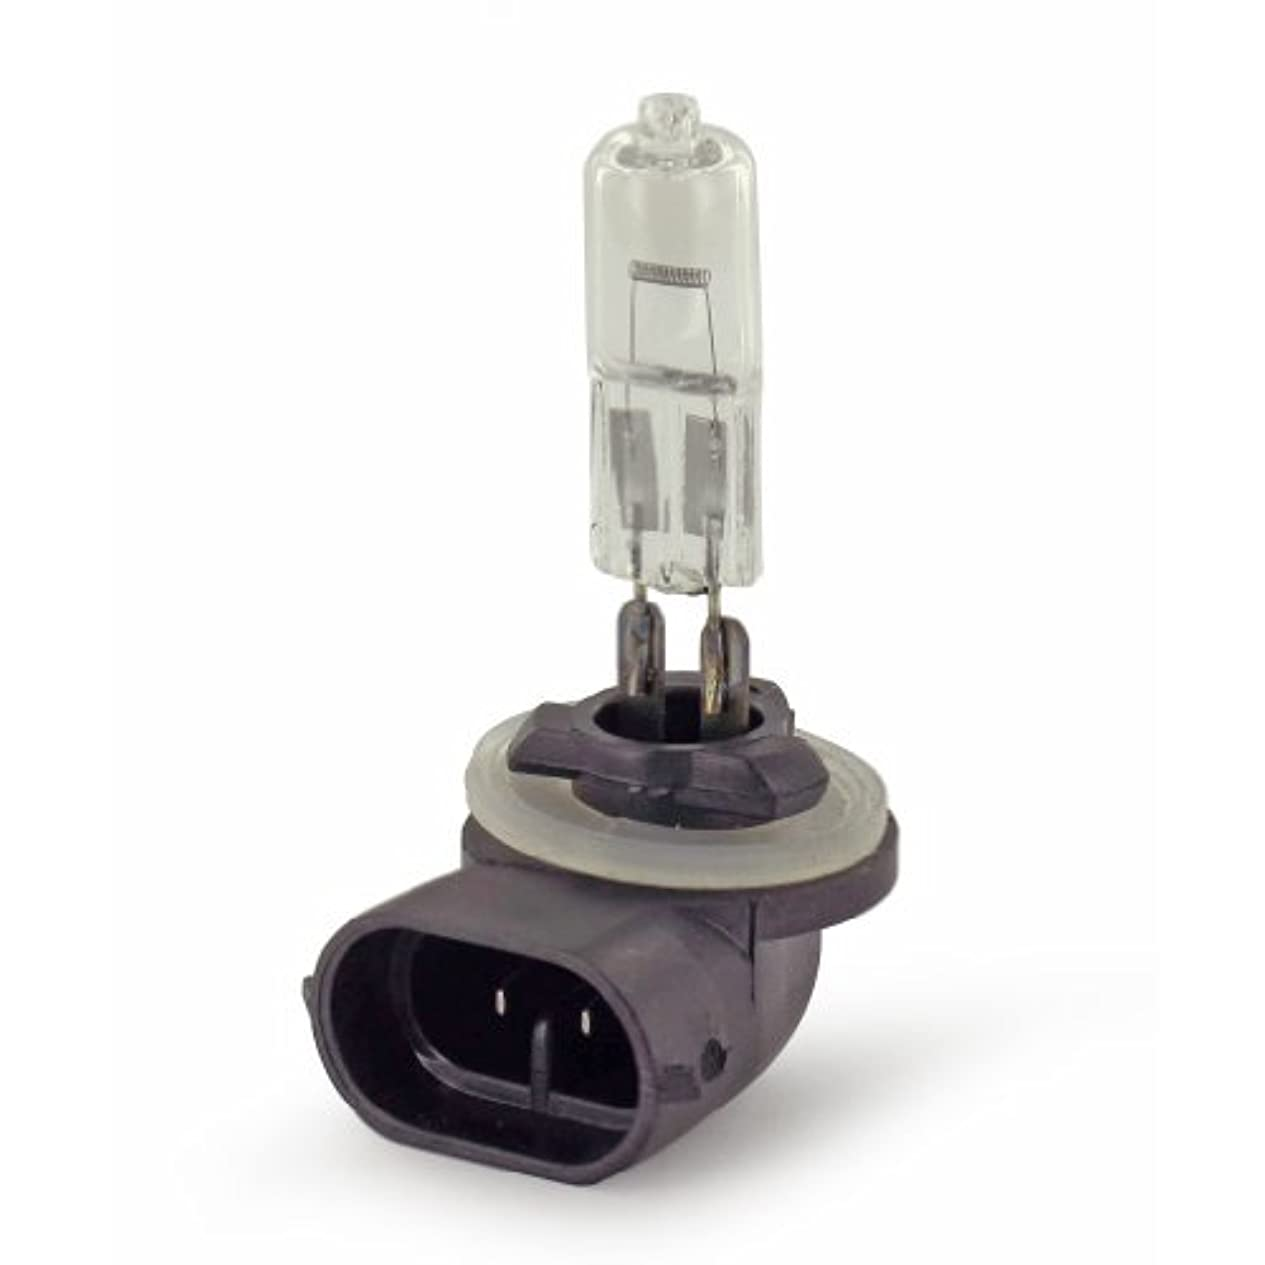 困惑するジャム消費者Intella 1062038 GE 894 Bulb, 12.8V, 38W by Intella Liftparts Inc.